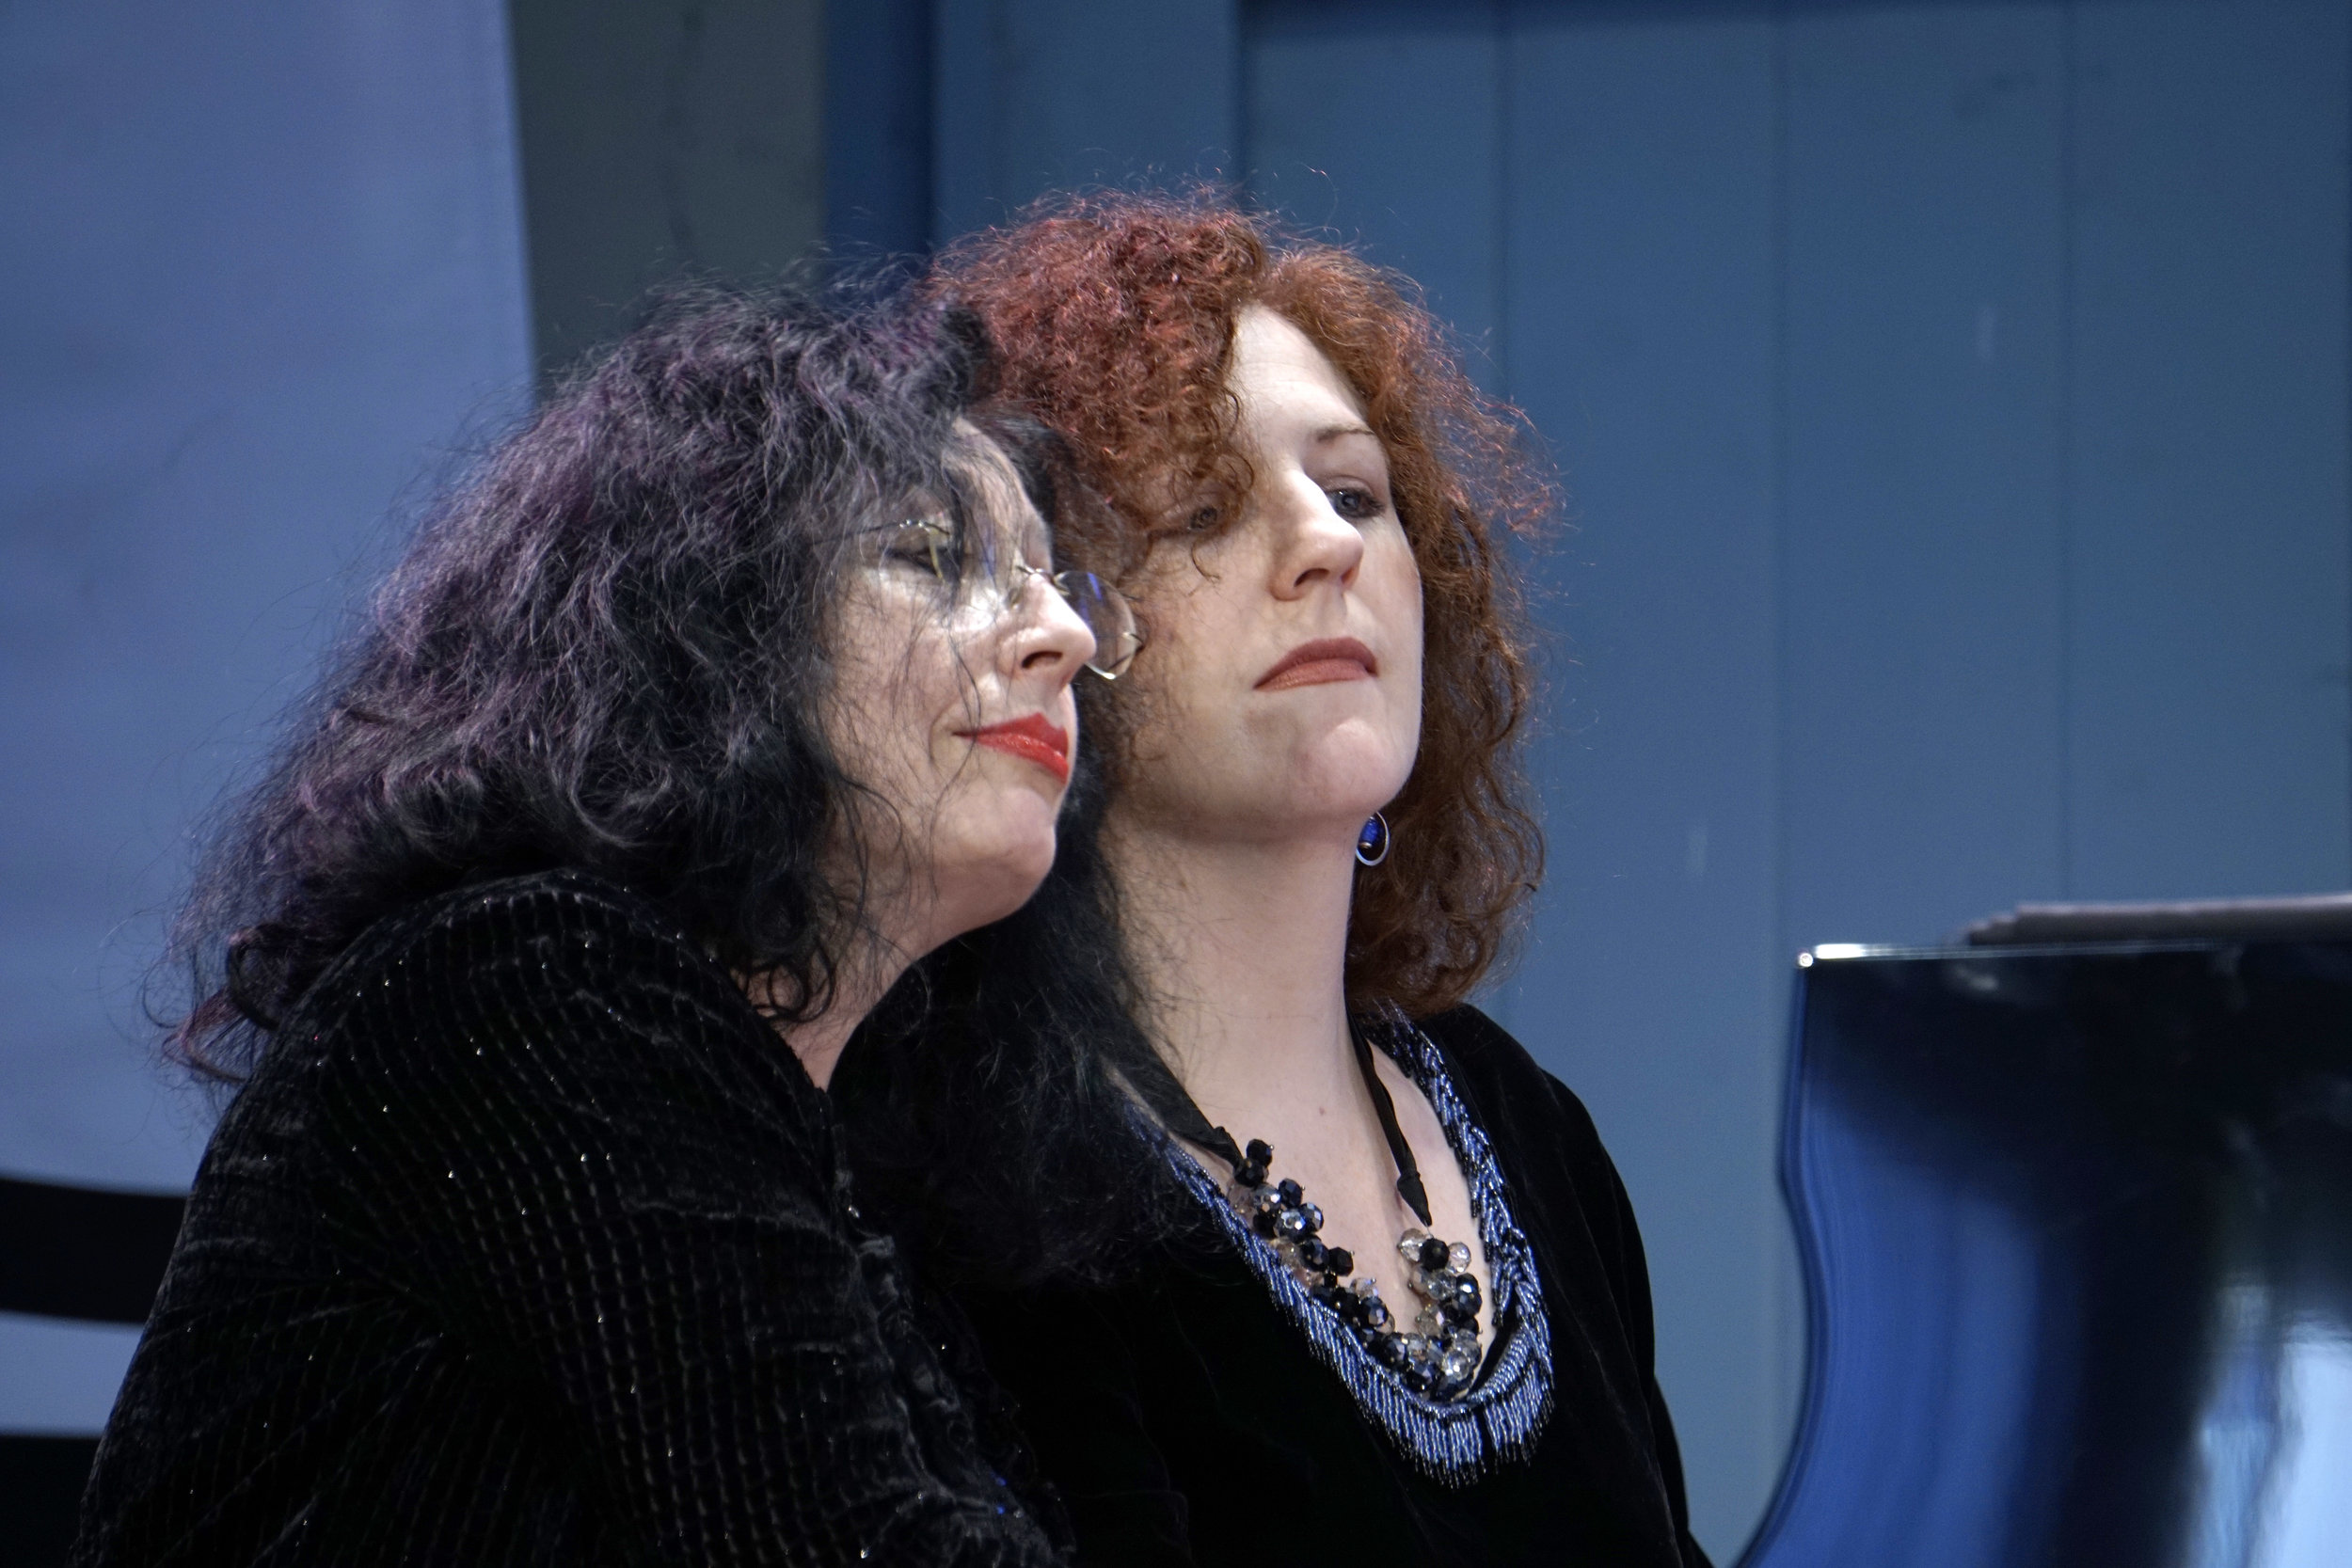 Concert 18 - Russian Roots and Rags. 